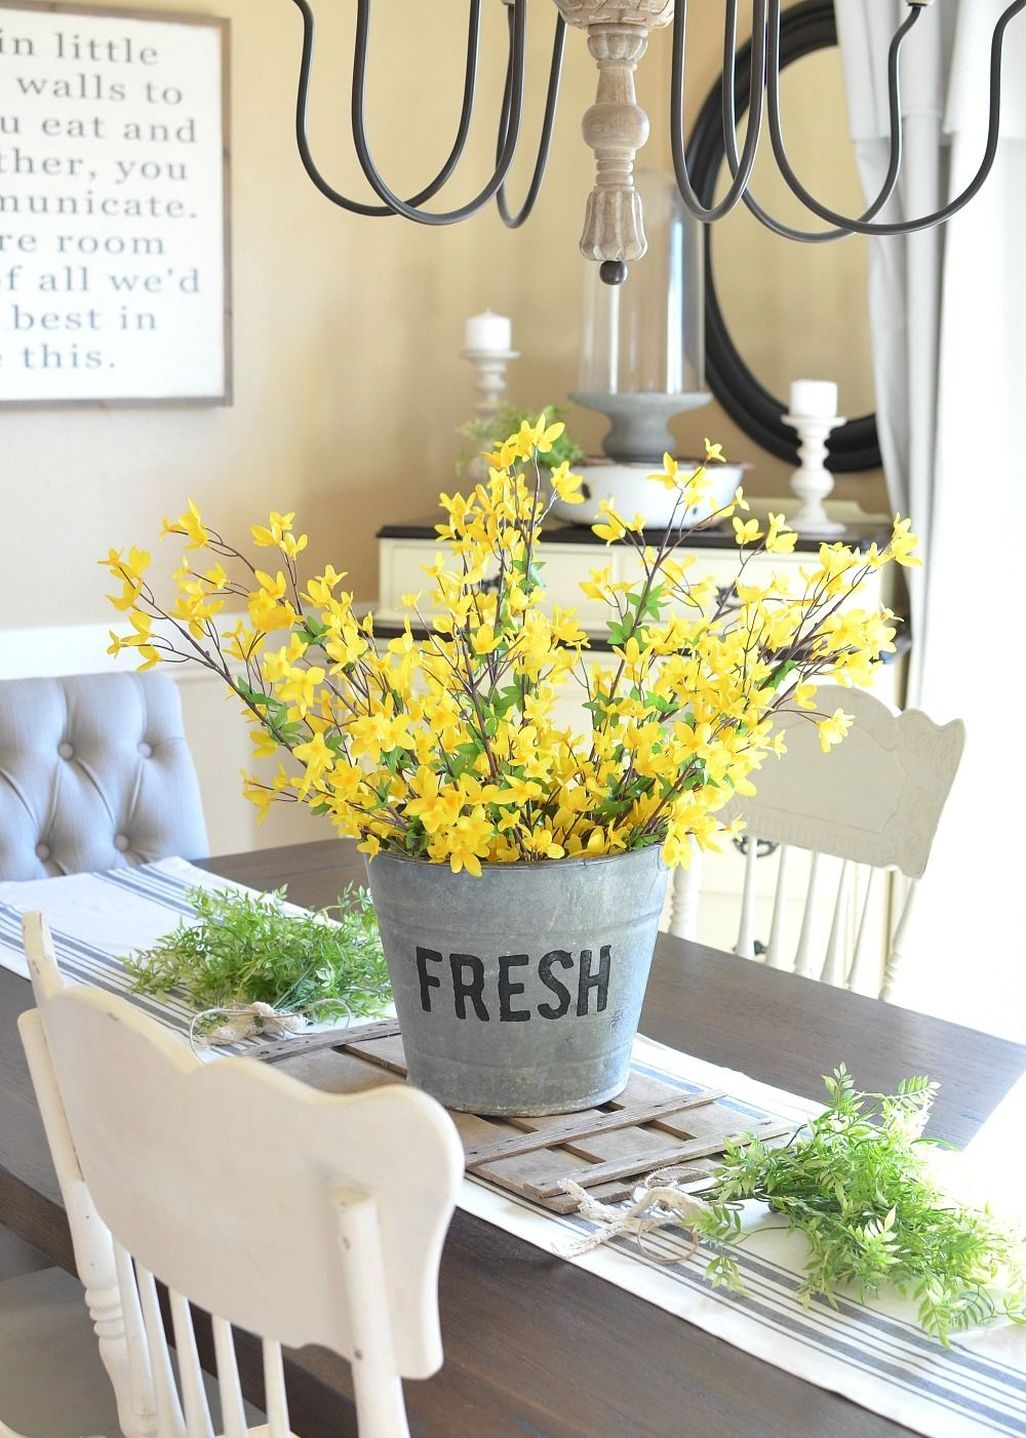 Easy Diy Spring And Summer Home Decor Ideas 04